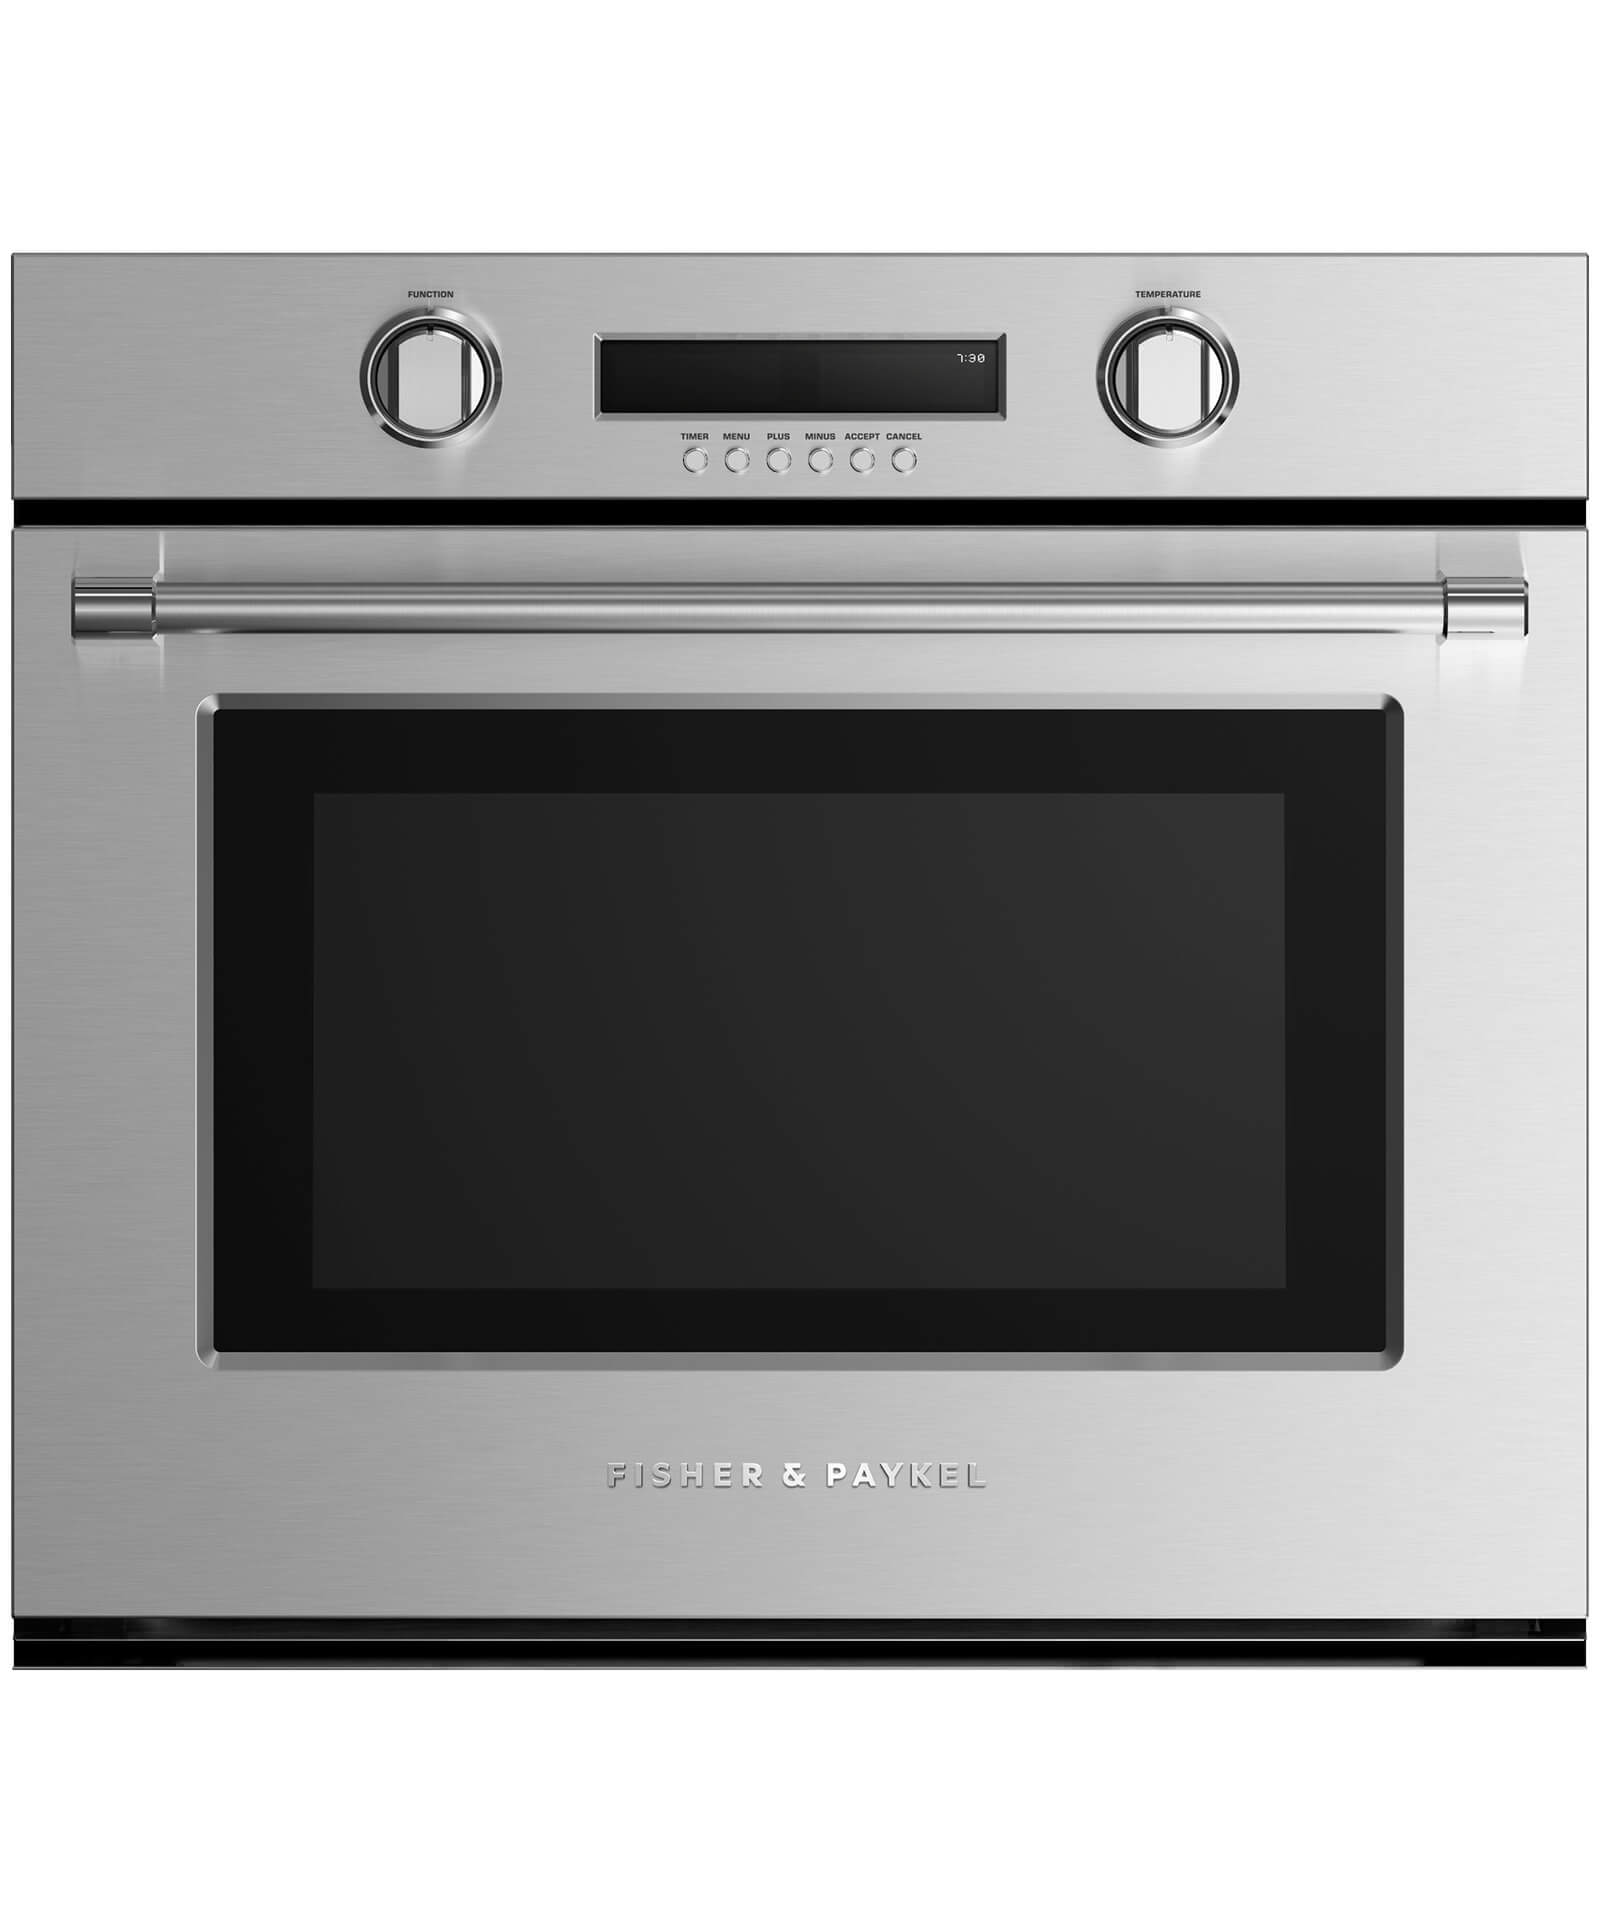 "WOSV2-30_N - 30"" Single Wall Oven - 71377"